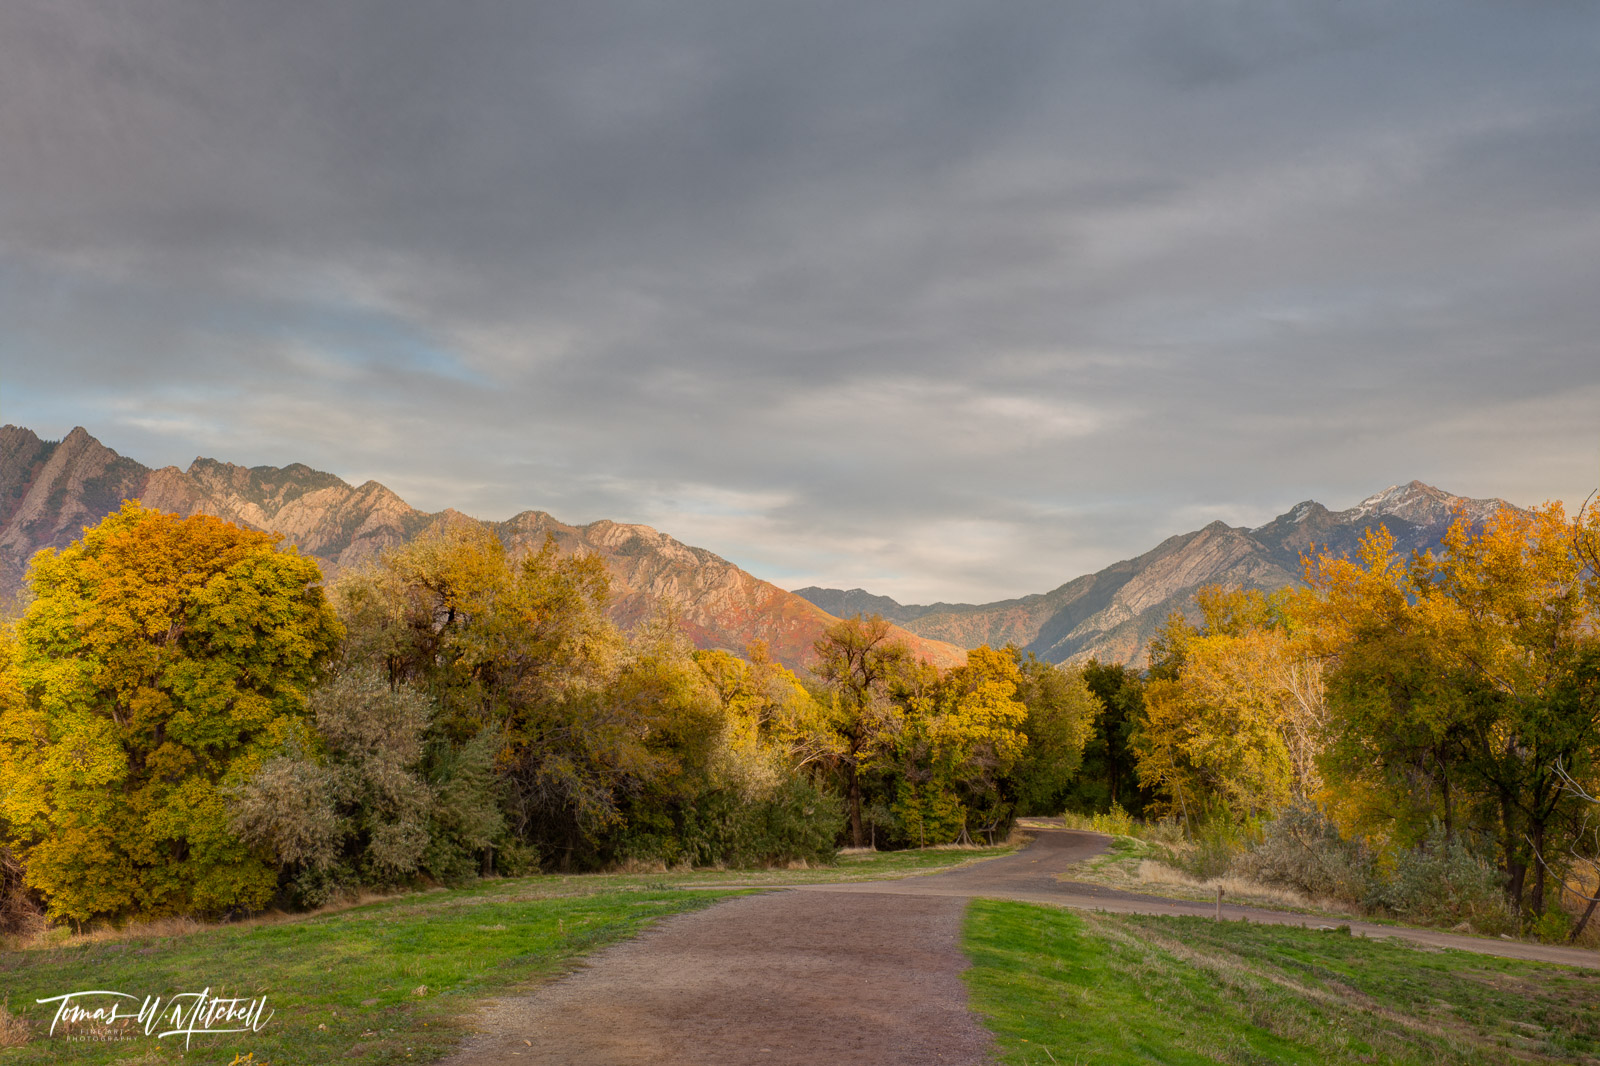 limited edition, fine art, prints, wheeler historic farm, utah, photograph, fall colors, red maples, mountains, country road, trees, grass, gray sky, photo